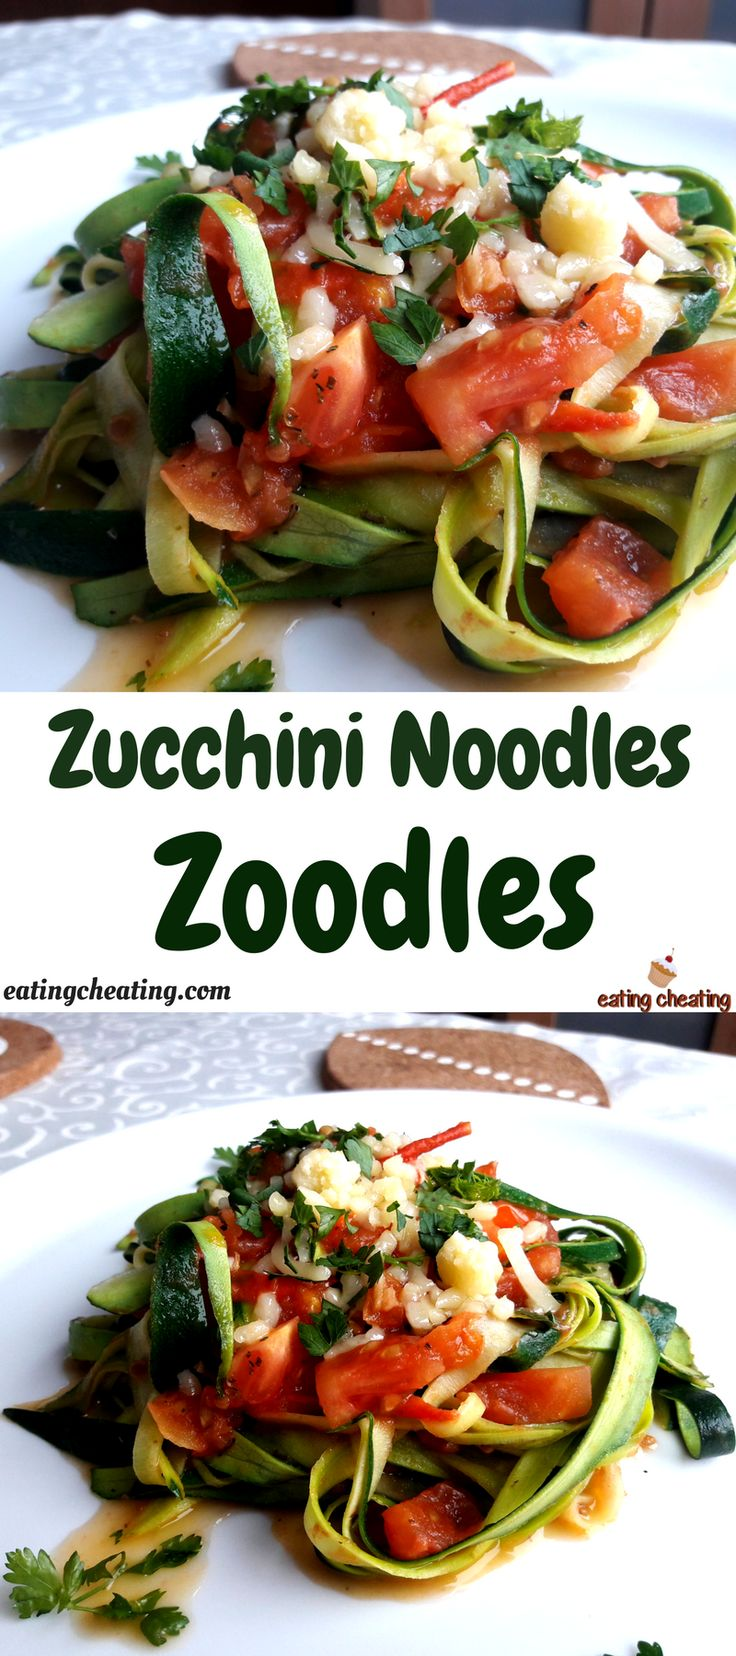 For this post I prepared interesting and good looking zucchini noodles. They are also called zoodles. I served the zucchini noodles with fresh tomatoes and made fresh tomato sauce. This recipe for zoodles with tomato sauce is great for one healthy meal. It can be served like a side dish and it is great for Christmas time!